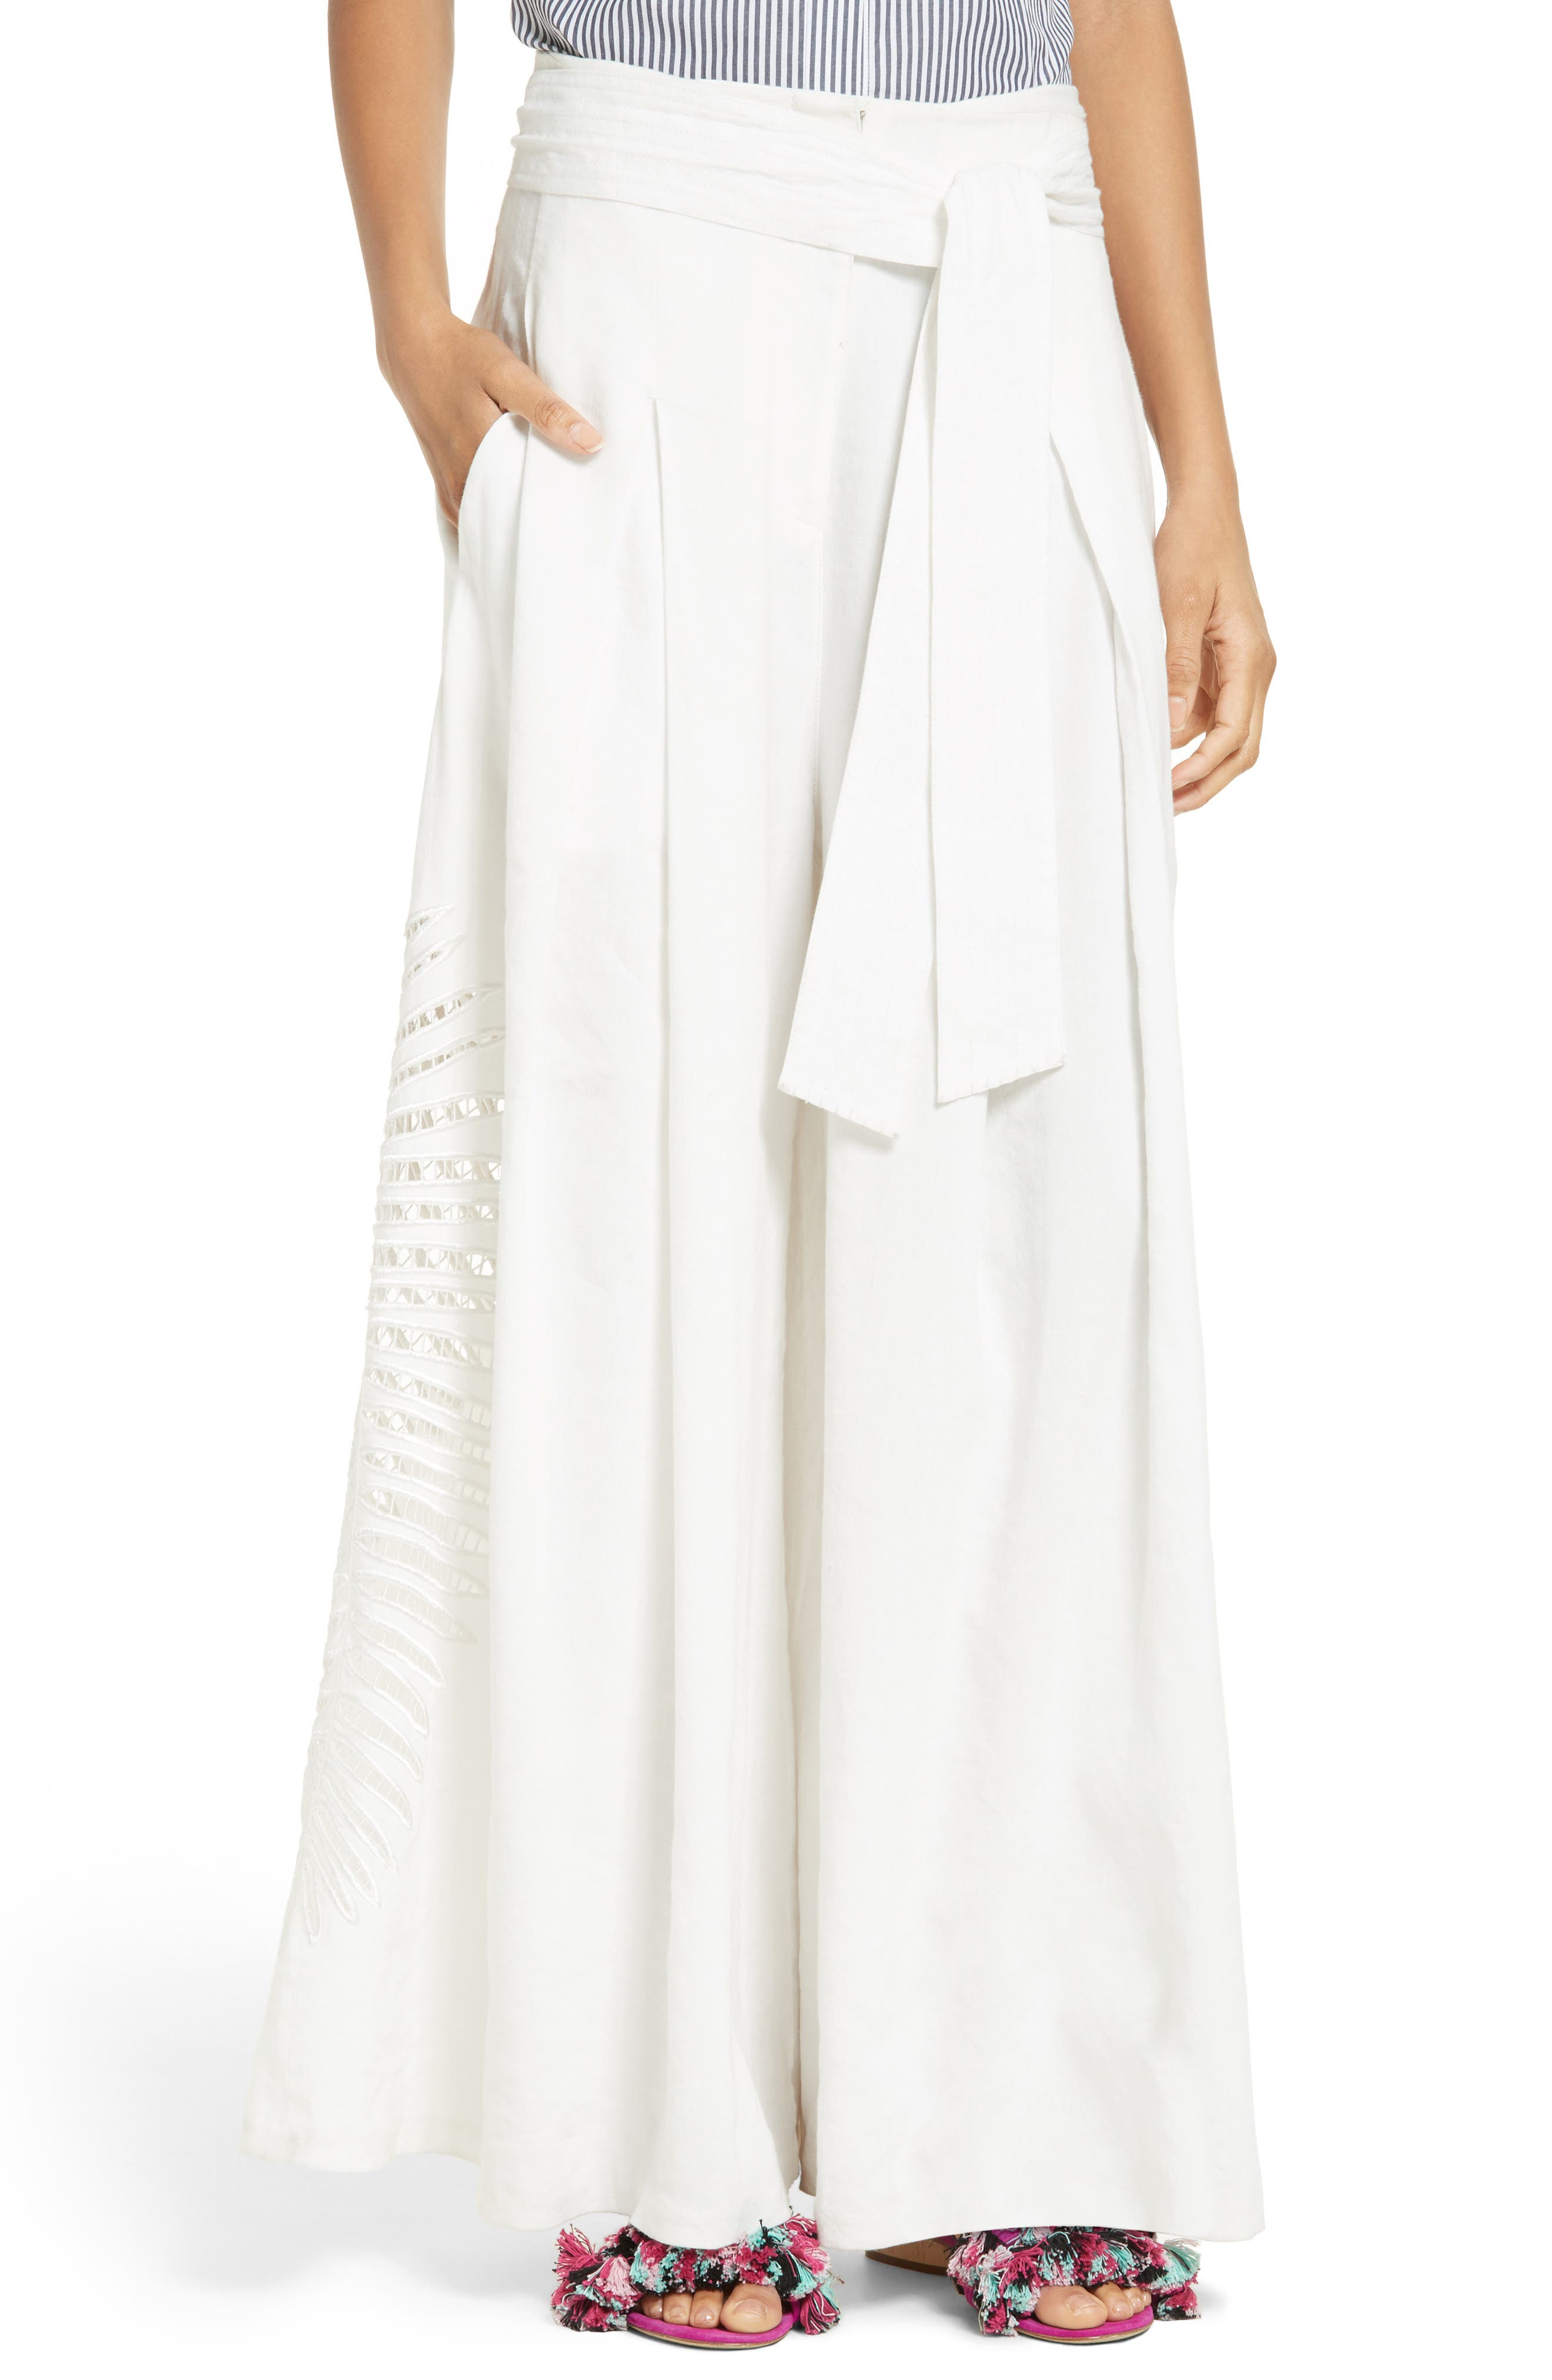 Alternate Image 1 Selected - Tanya Taylor Lulu Palm Embroidered Pants